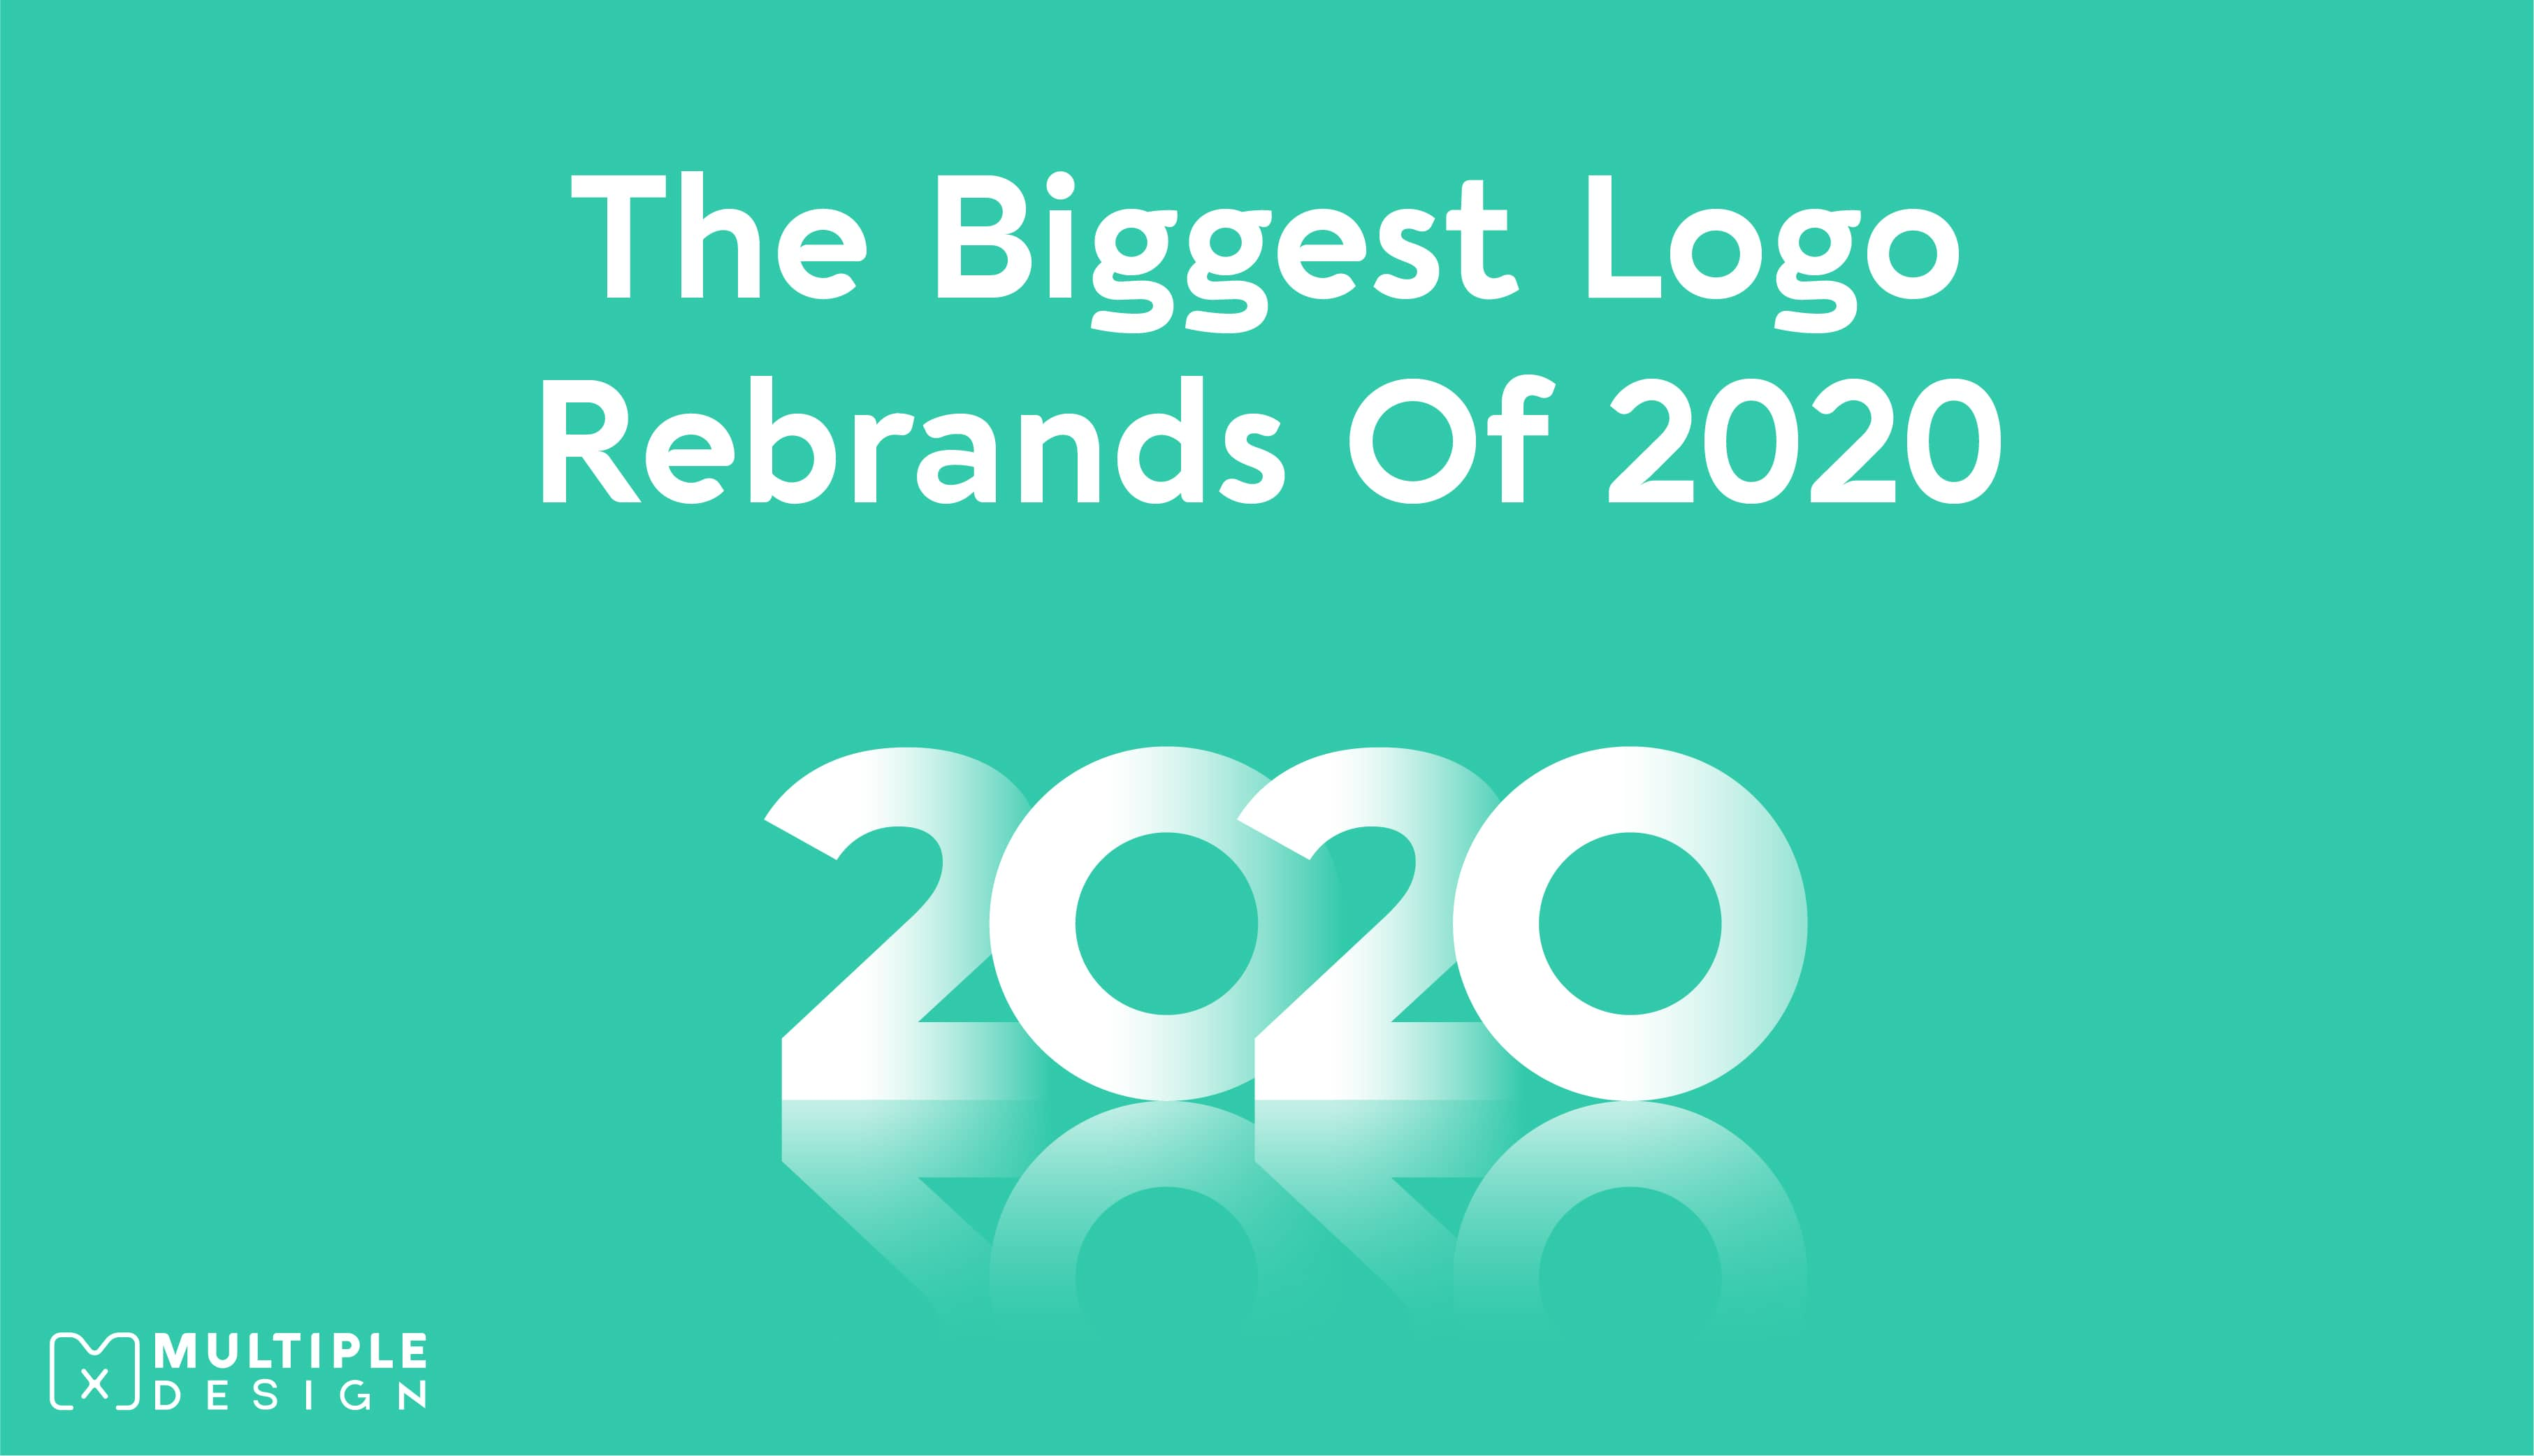 The Biggest Logo Rebrands Of 2020: Updated Weekly